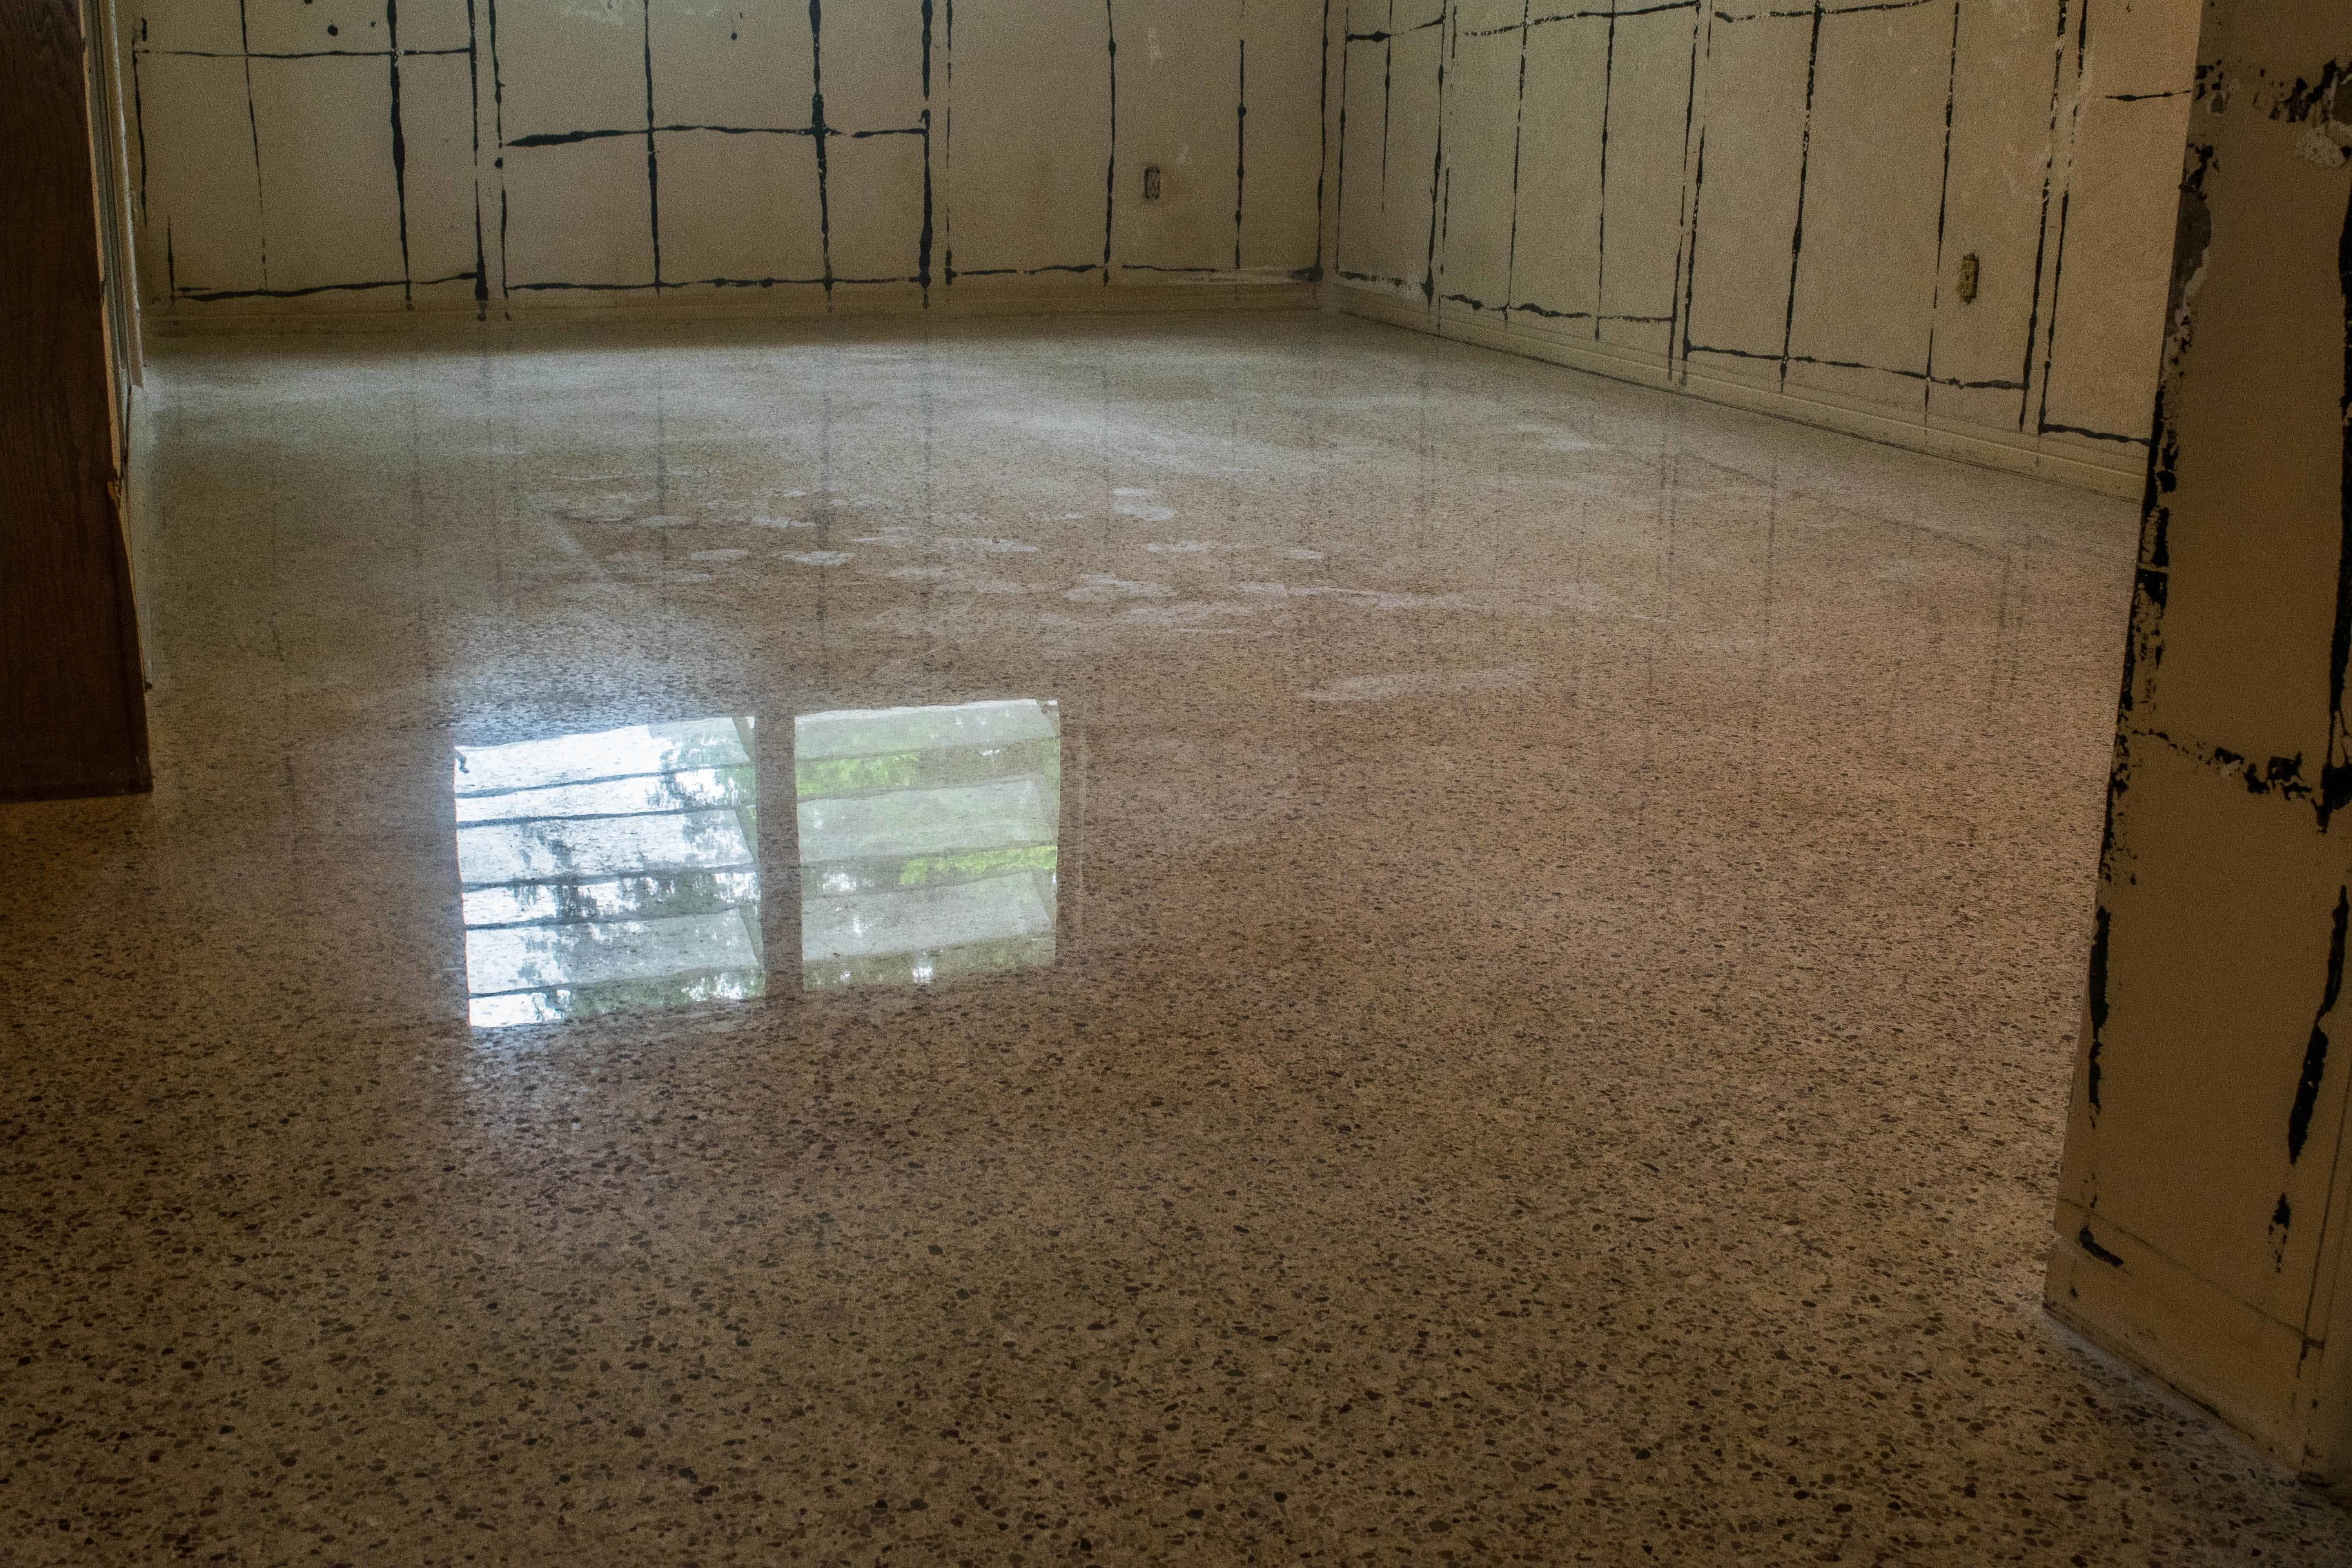 Terrazzo With Severe Pad Damage May Still Be Restored